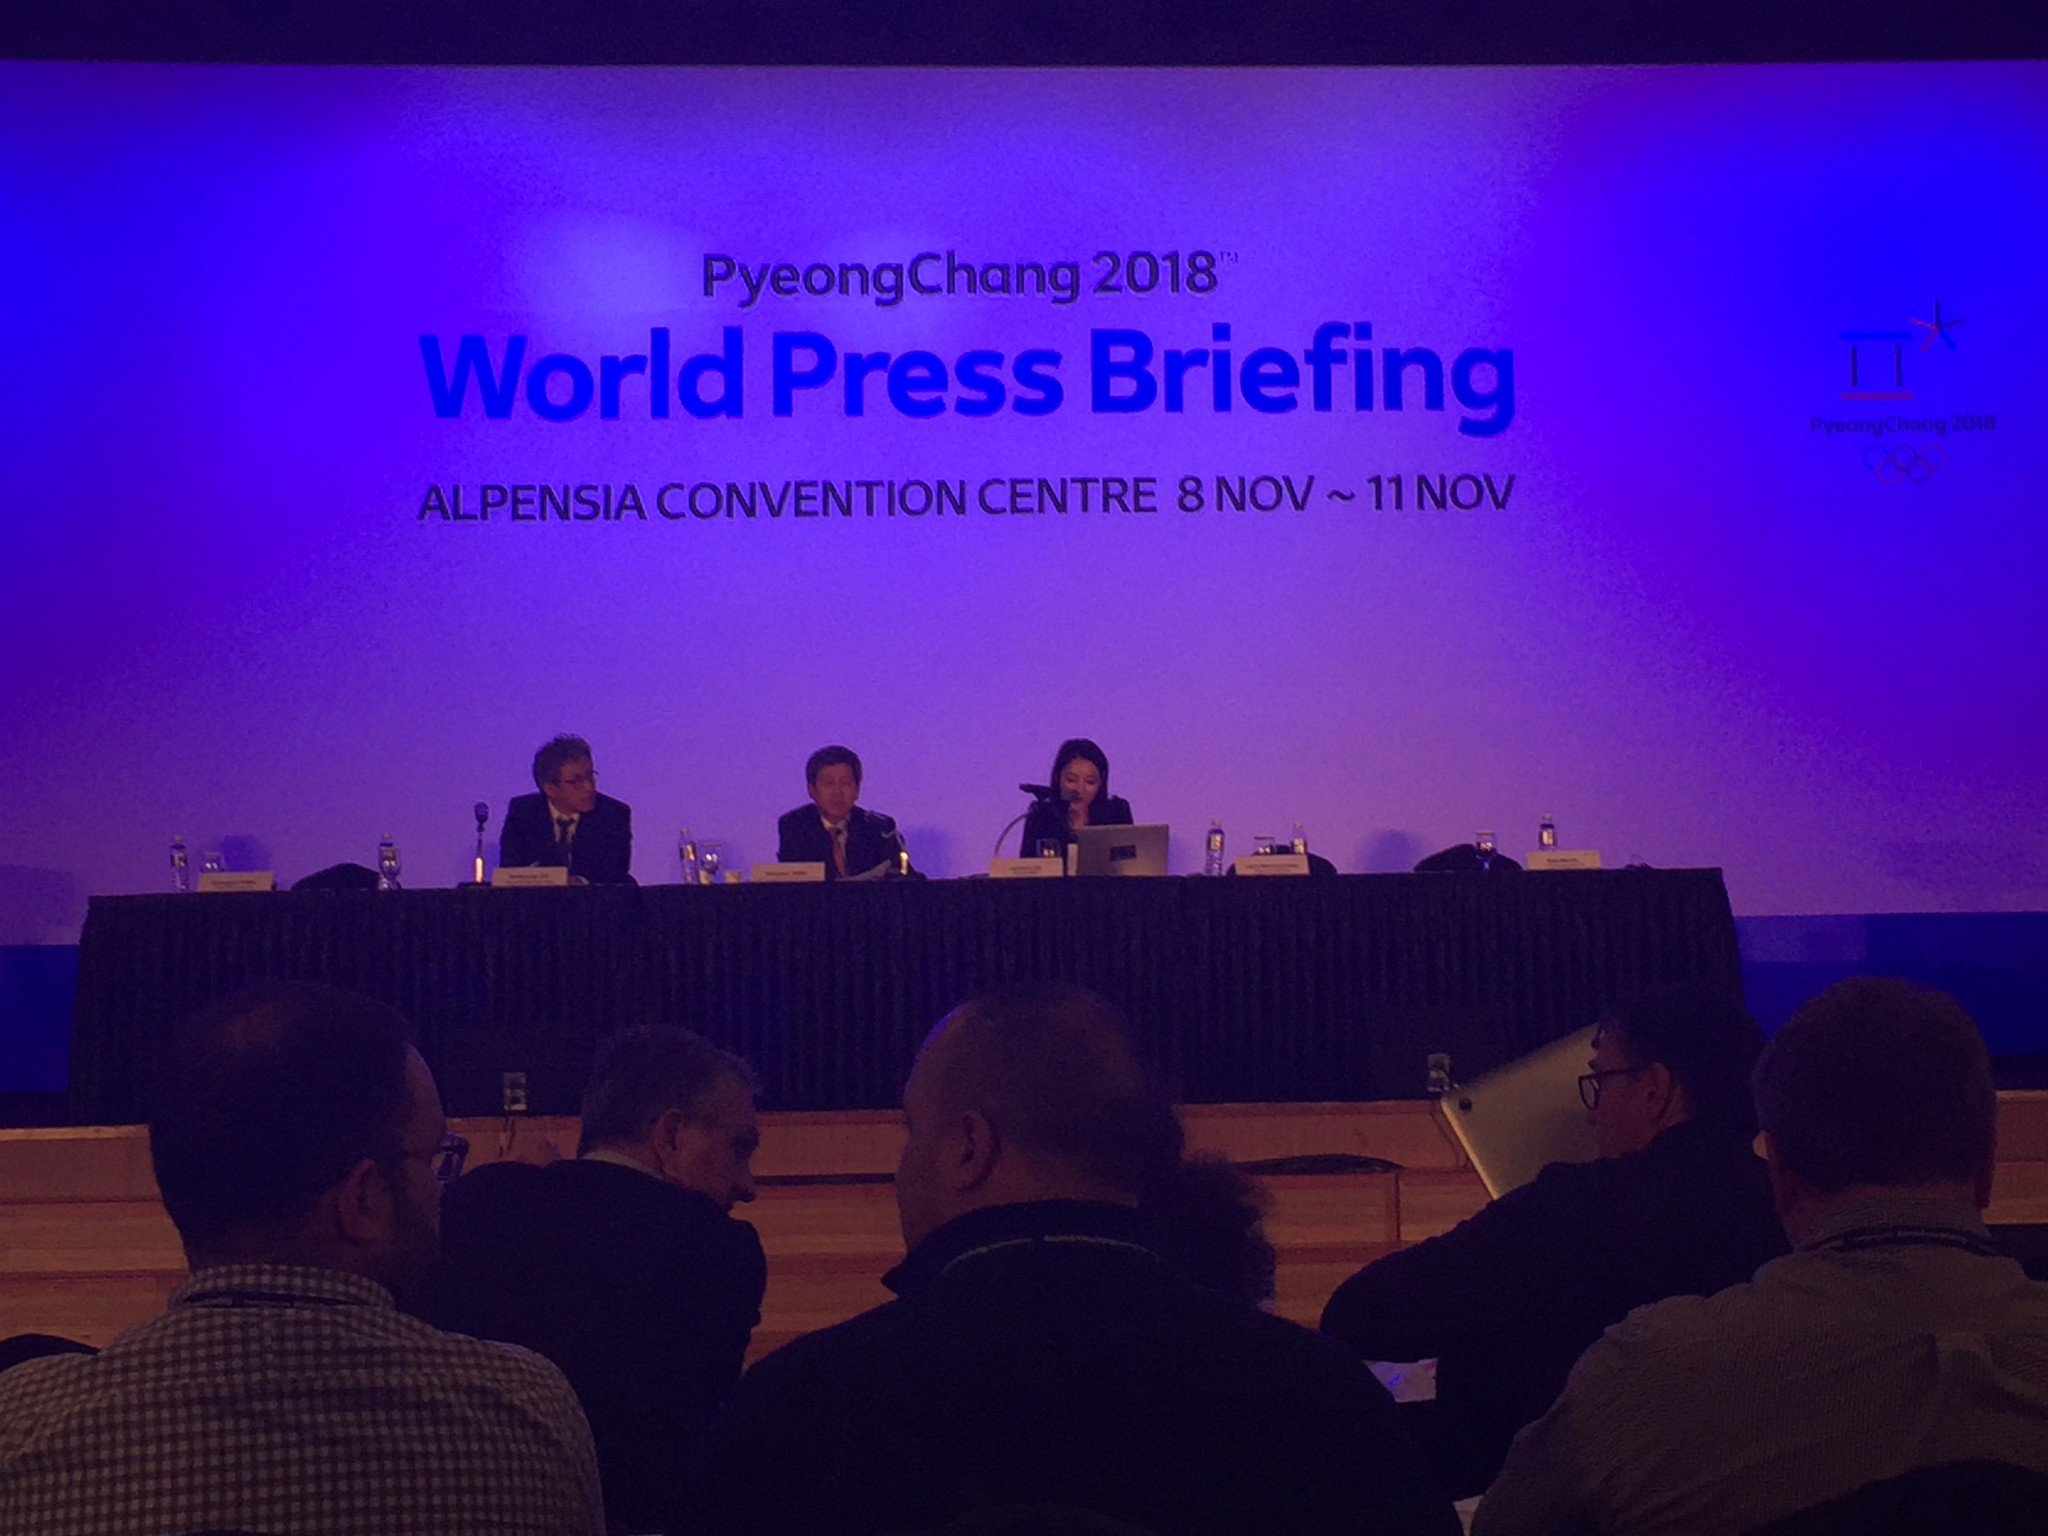 PyeongChang 2018 World Press Briefing